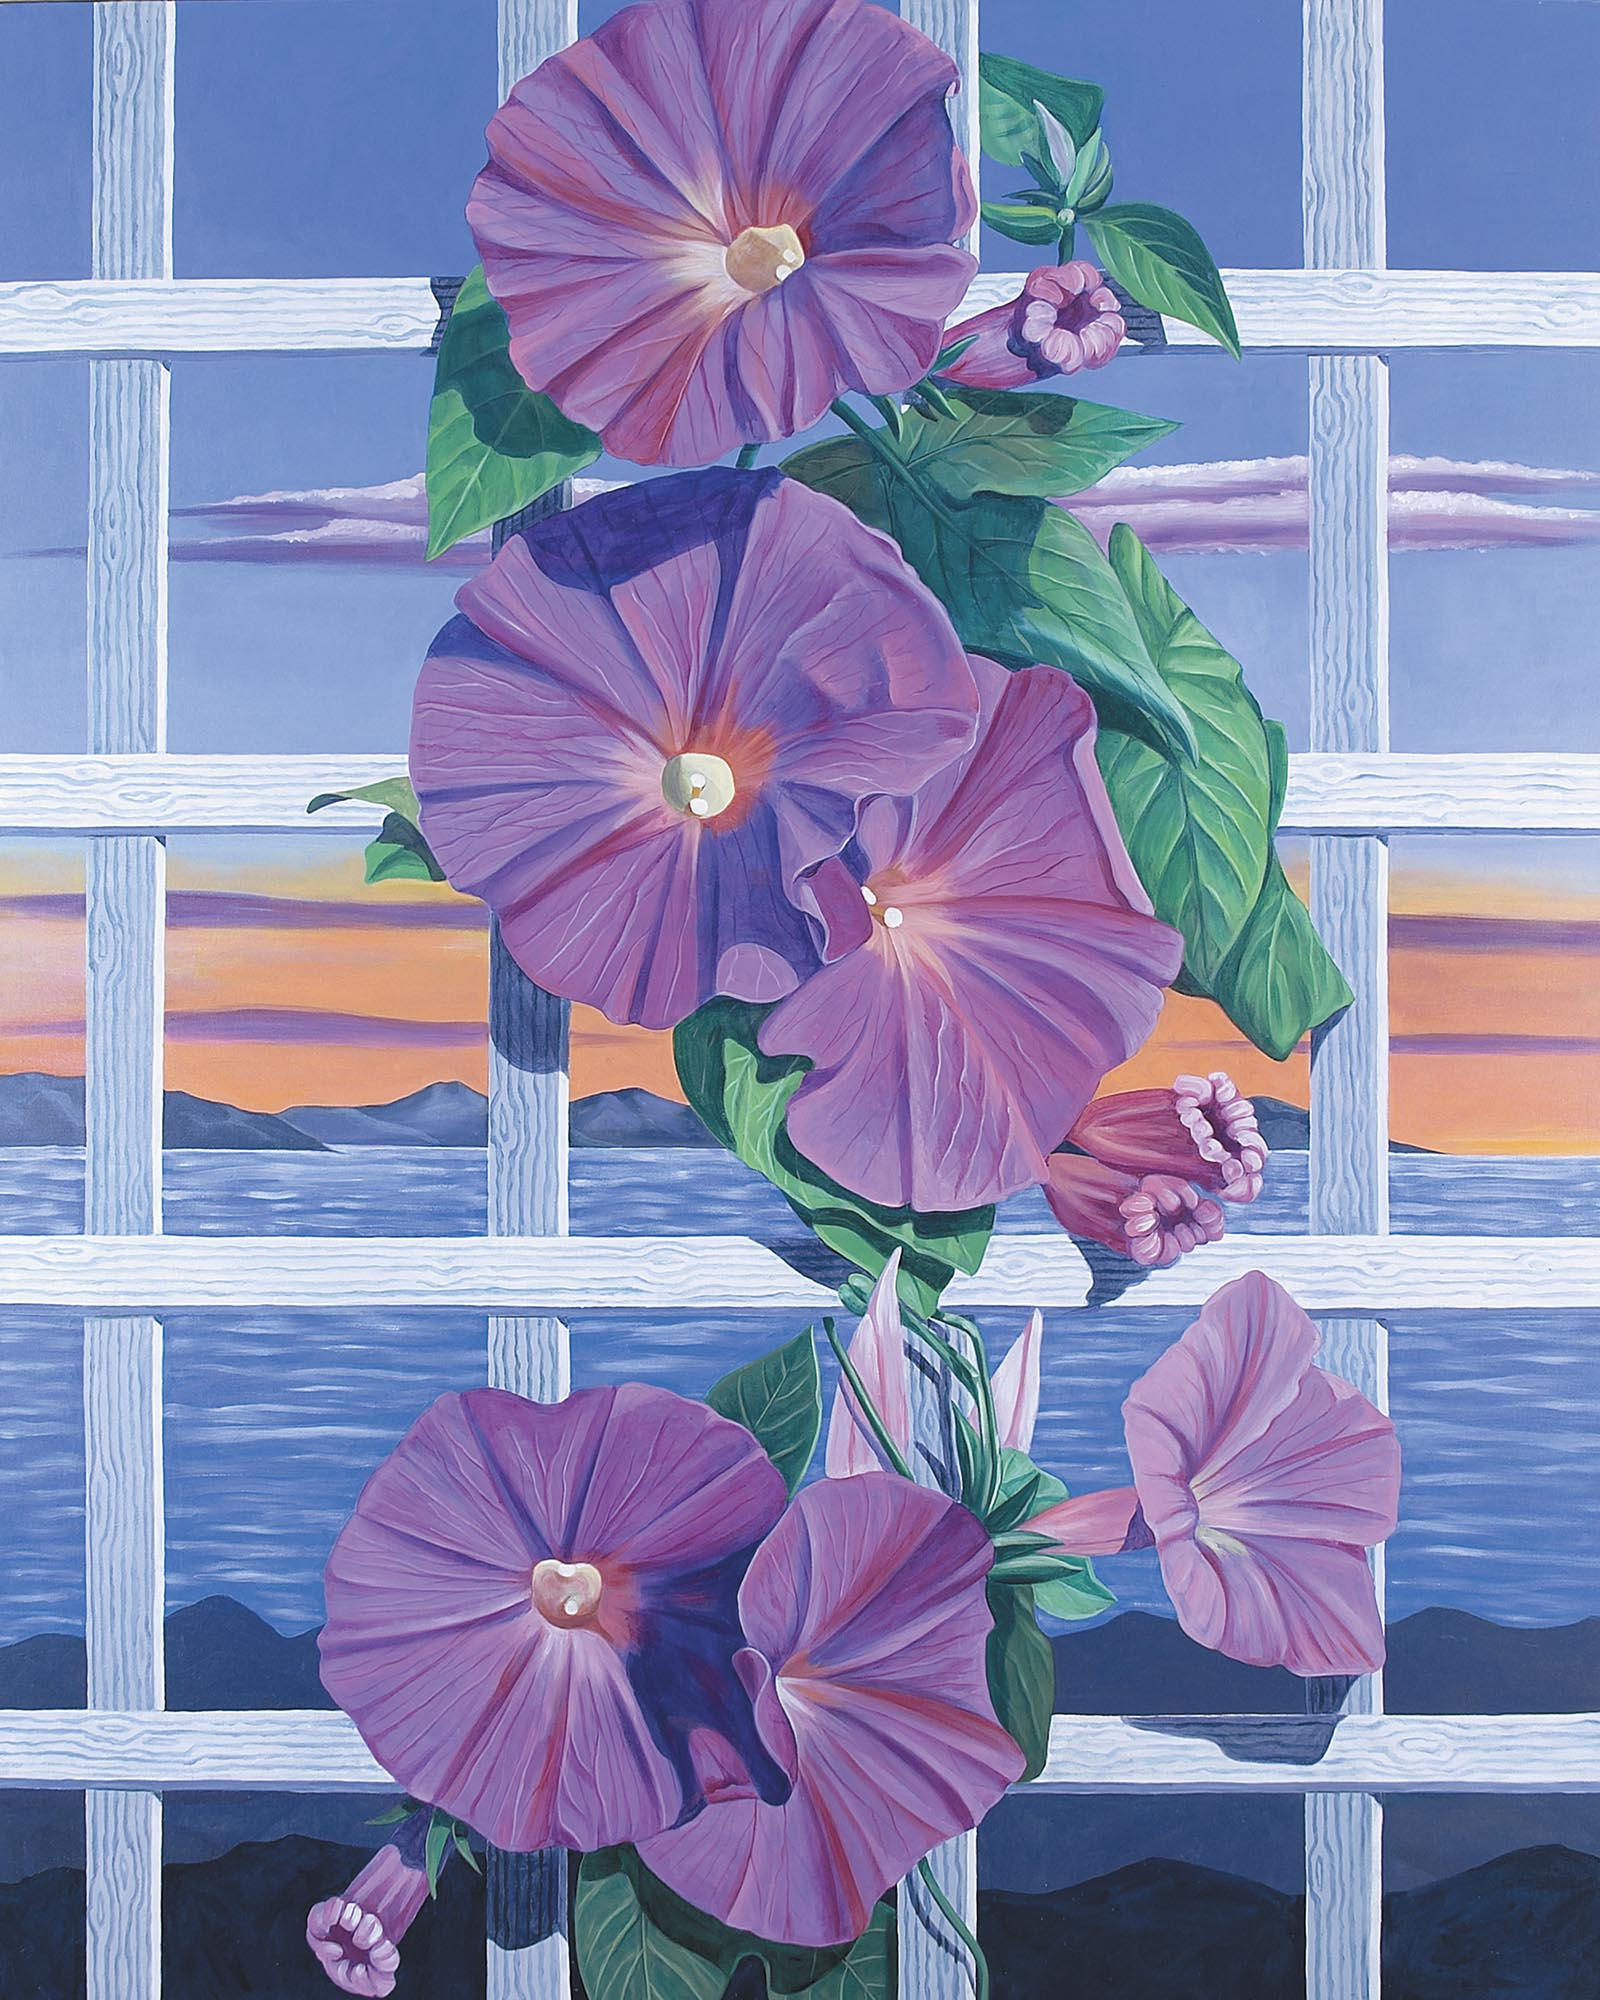 Morning Glories, 60 x 48 inches